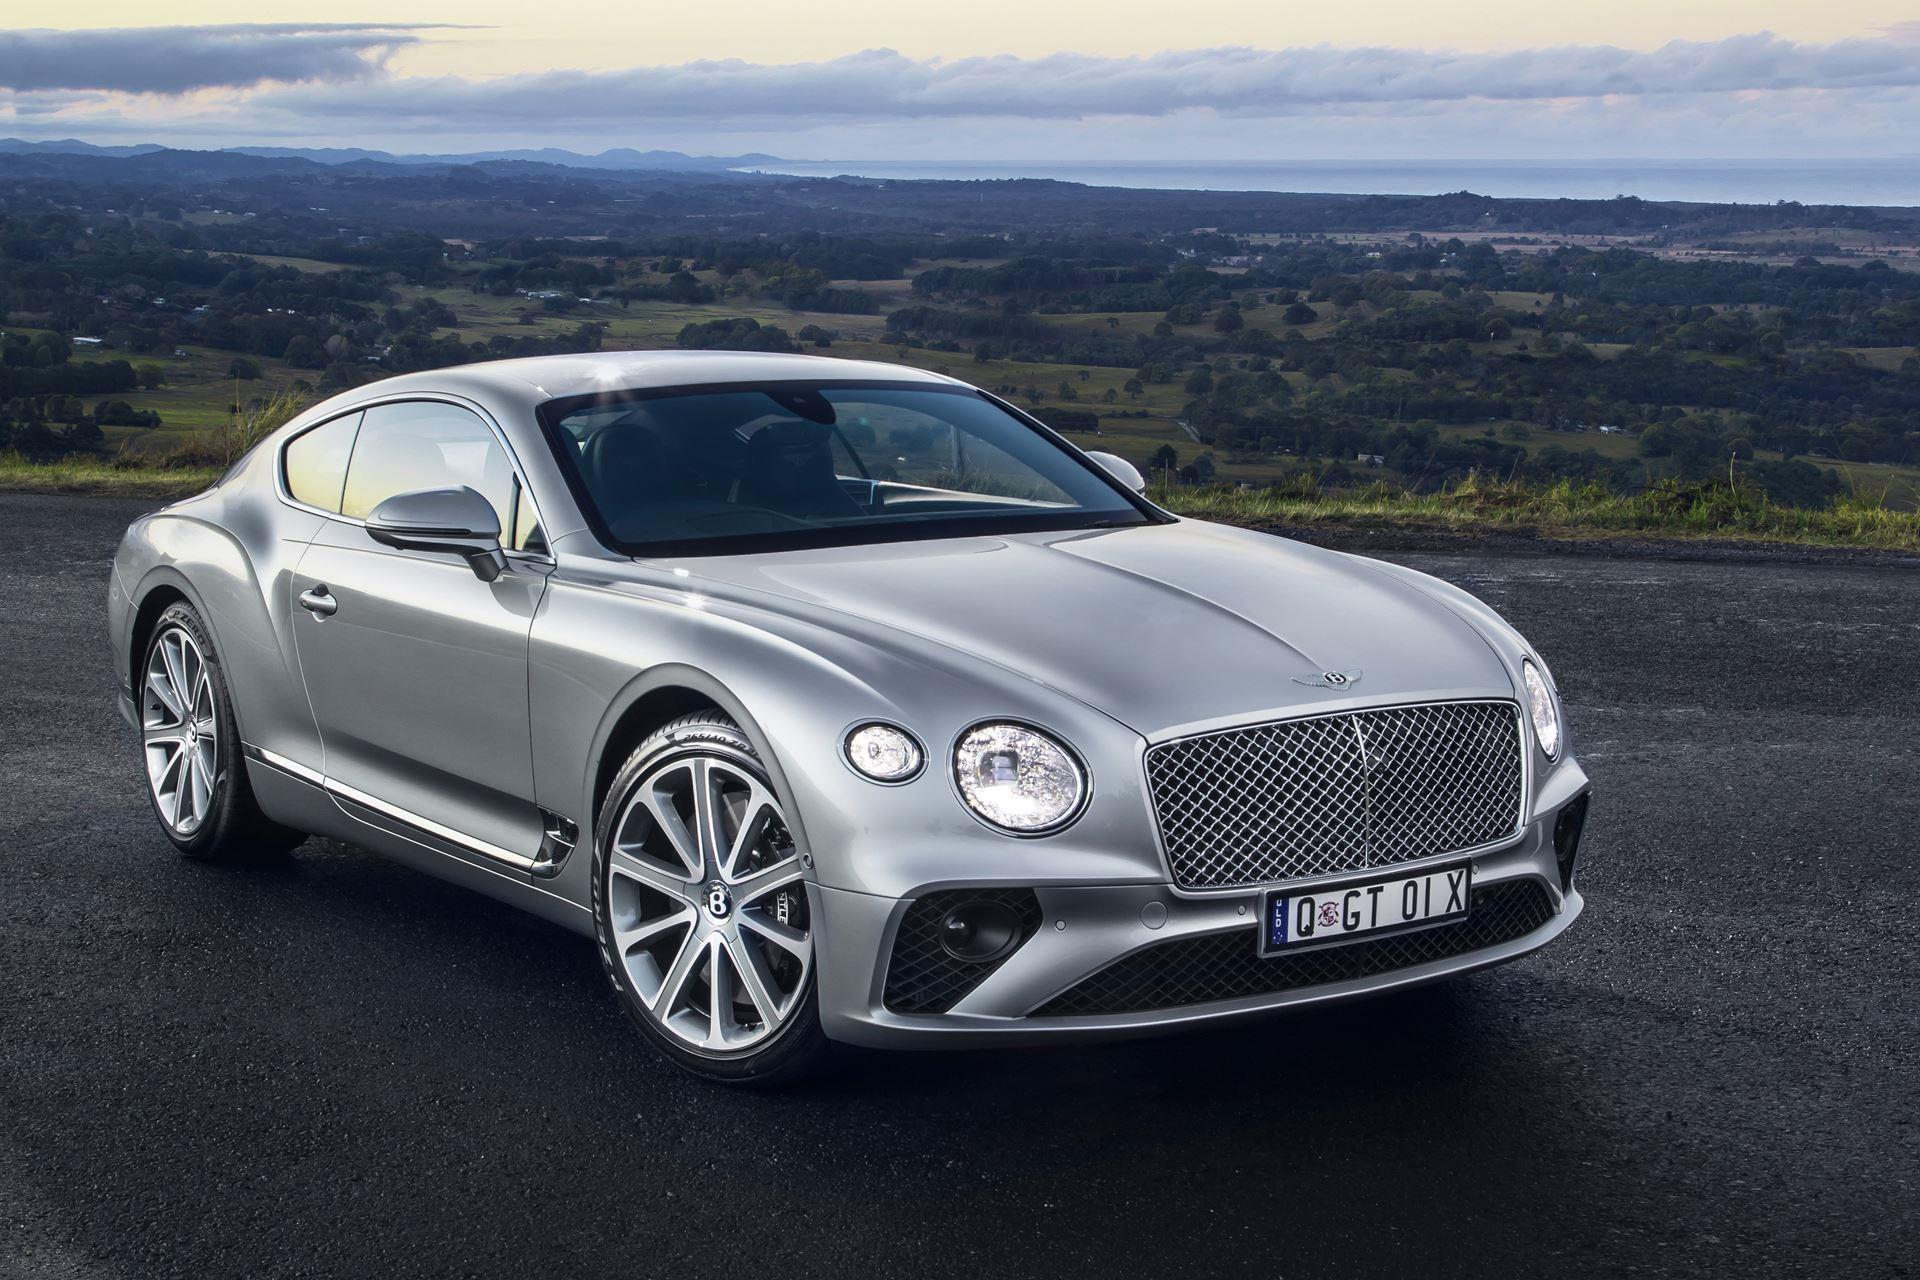 2019 Bentley Continental GT Owners Manual